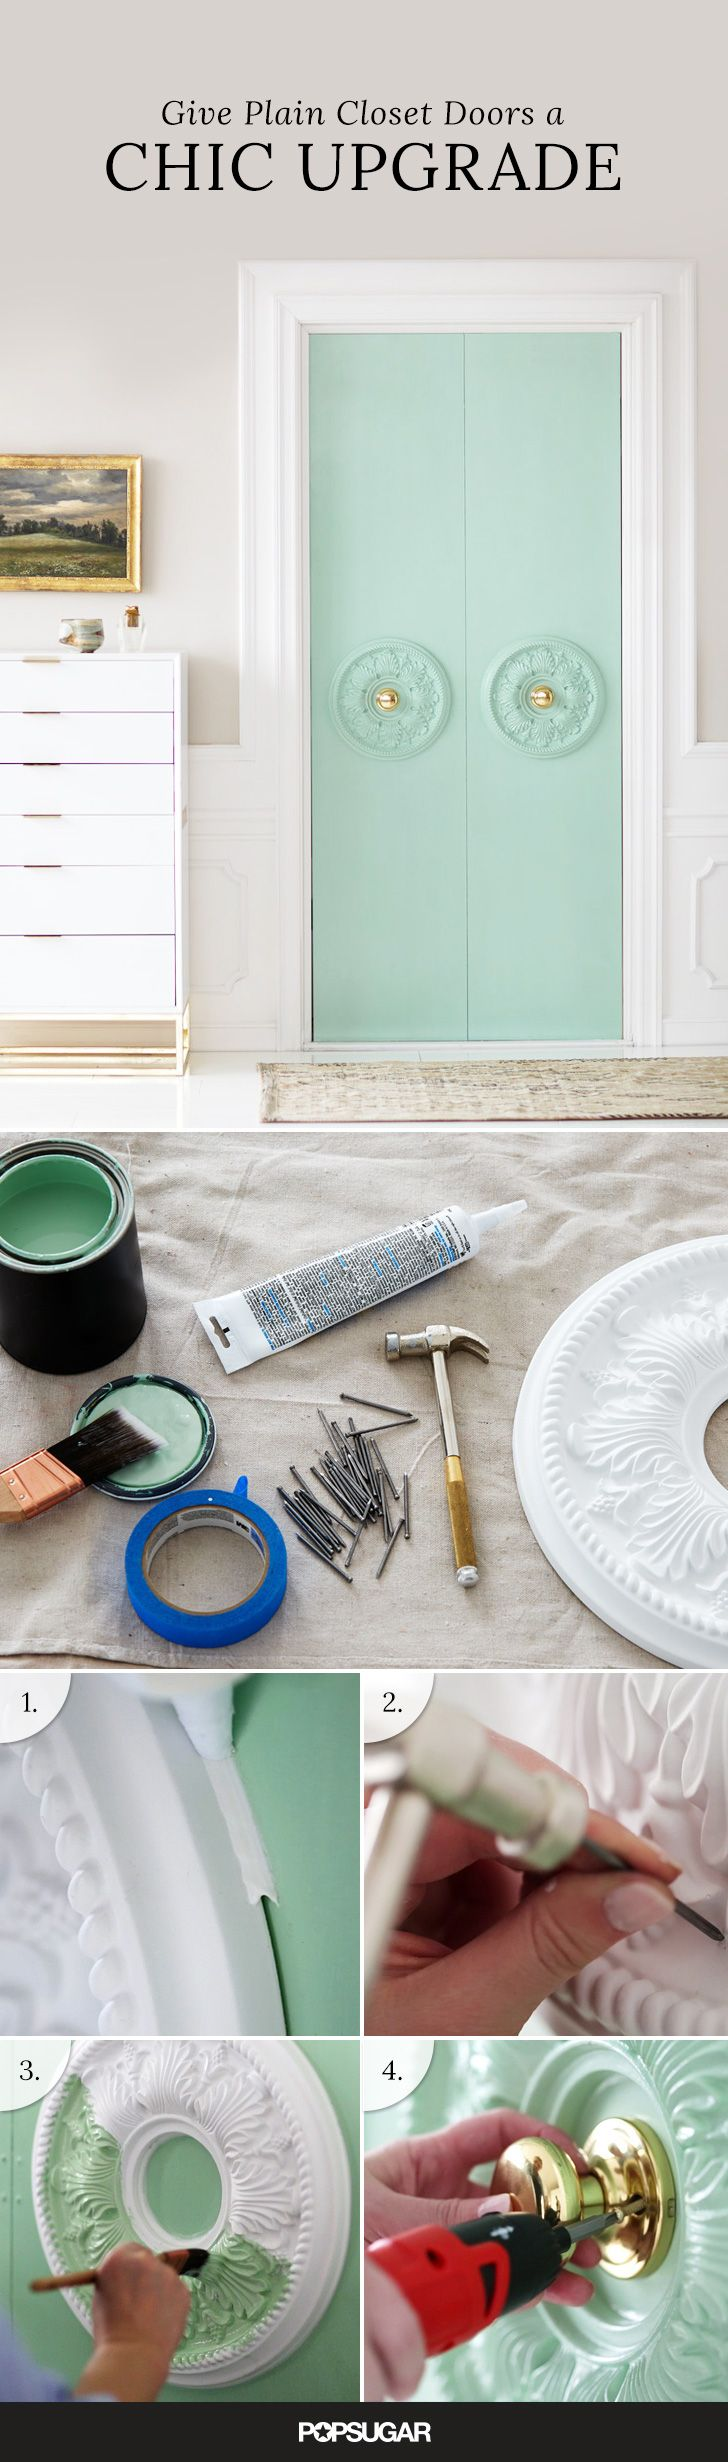 turquoise jewelry value The Clever DIY That Makes Plain Closet Doors Look Like a Million Bucks